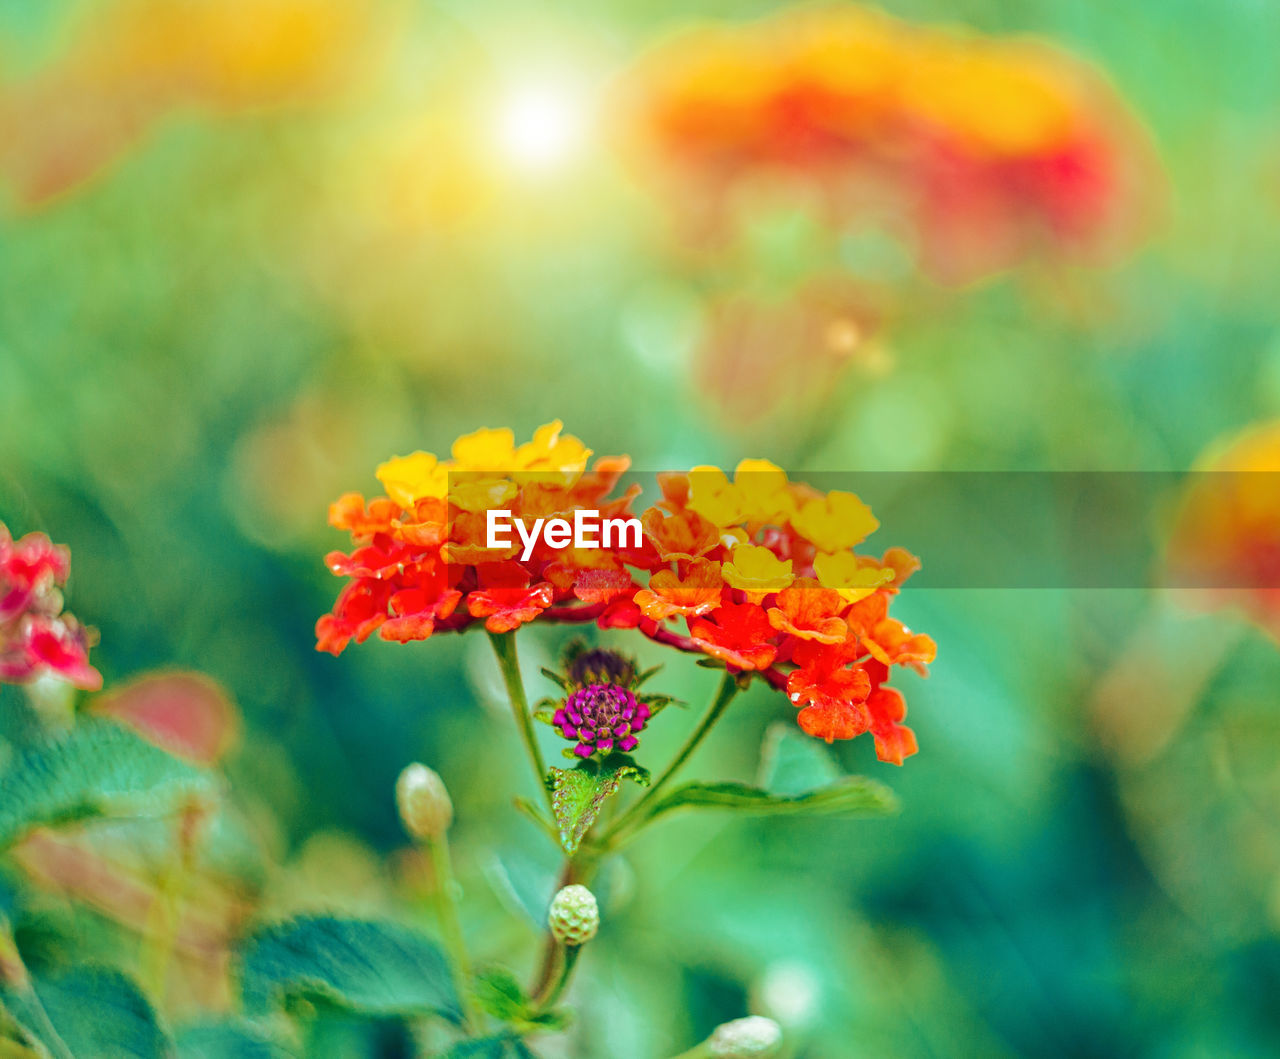 flower, flowering plant, plant, beauty in nature, vulnerability, fragility, close-up, freshness, growth, selective focus, no people, petal, nature, focus on foreground, day, flower head, inflorescence, yellow, orange color, outdoors, lantana